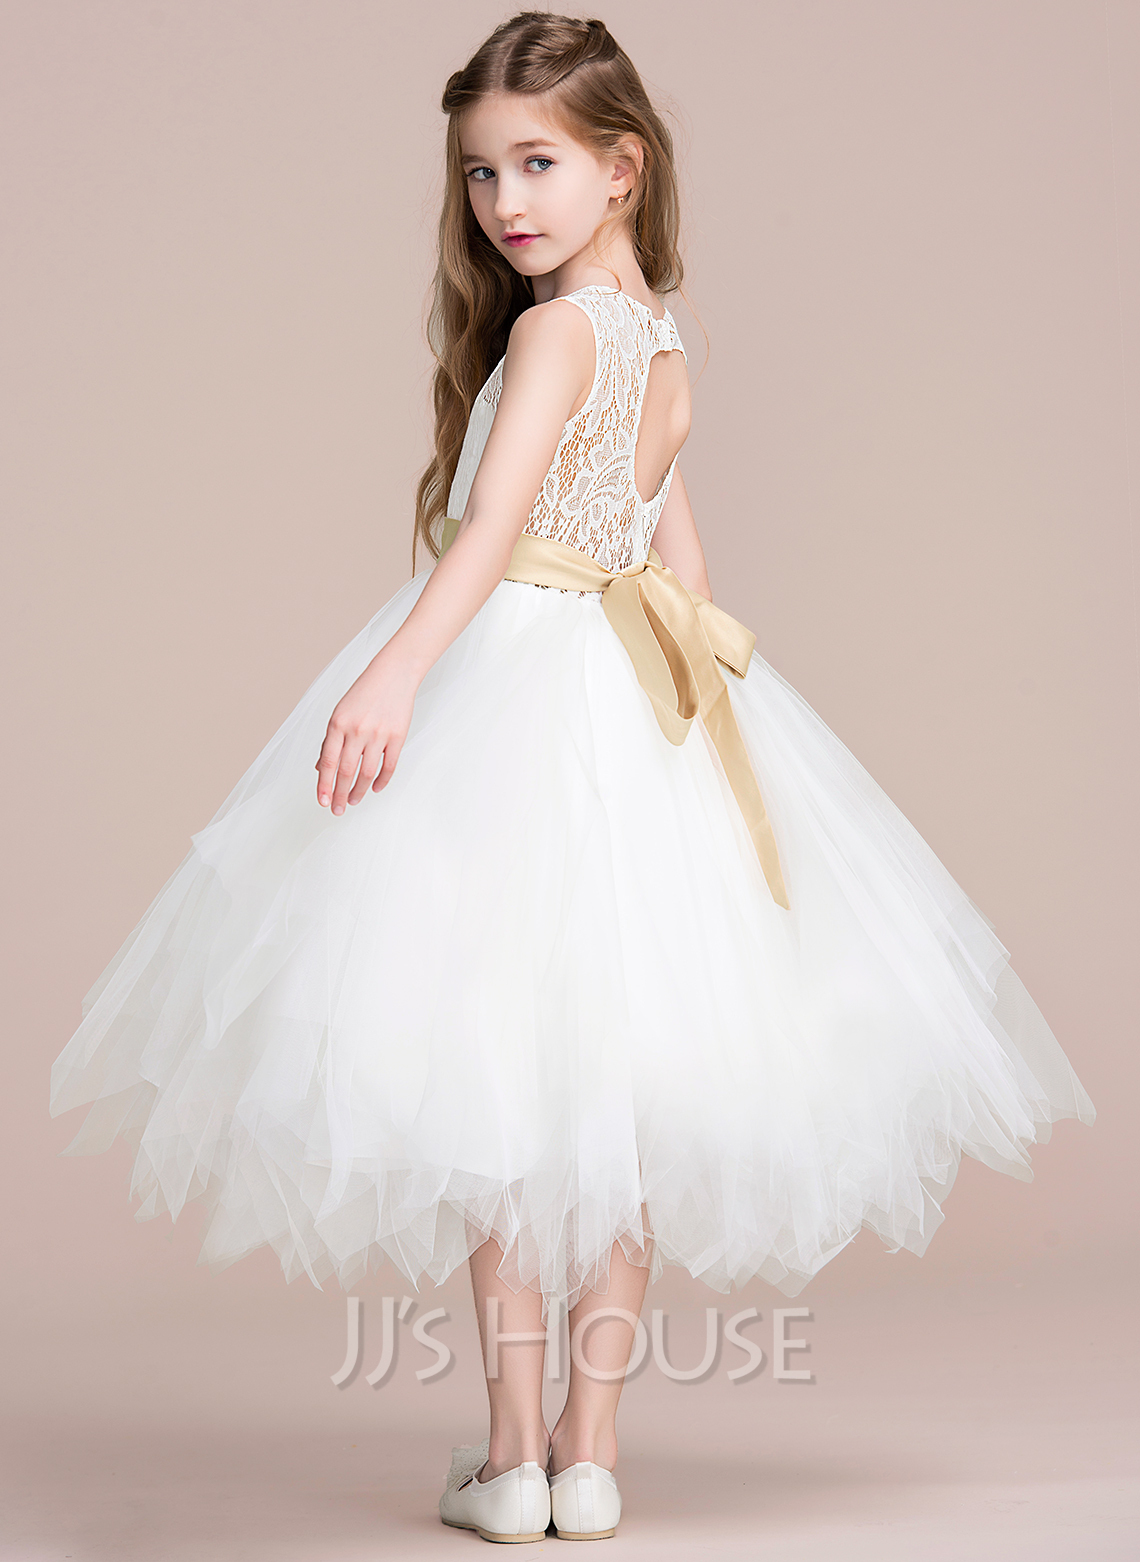 Find affordable flower girl dresses jjshouse a lineprincess tea length flower girl dress tullelace sleeveless izmirmasajfo Images